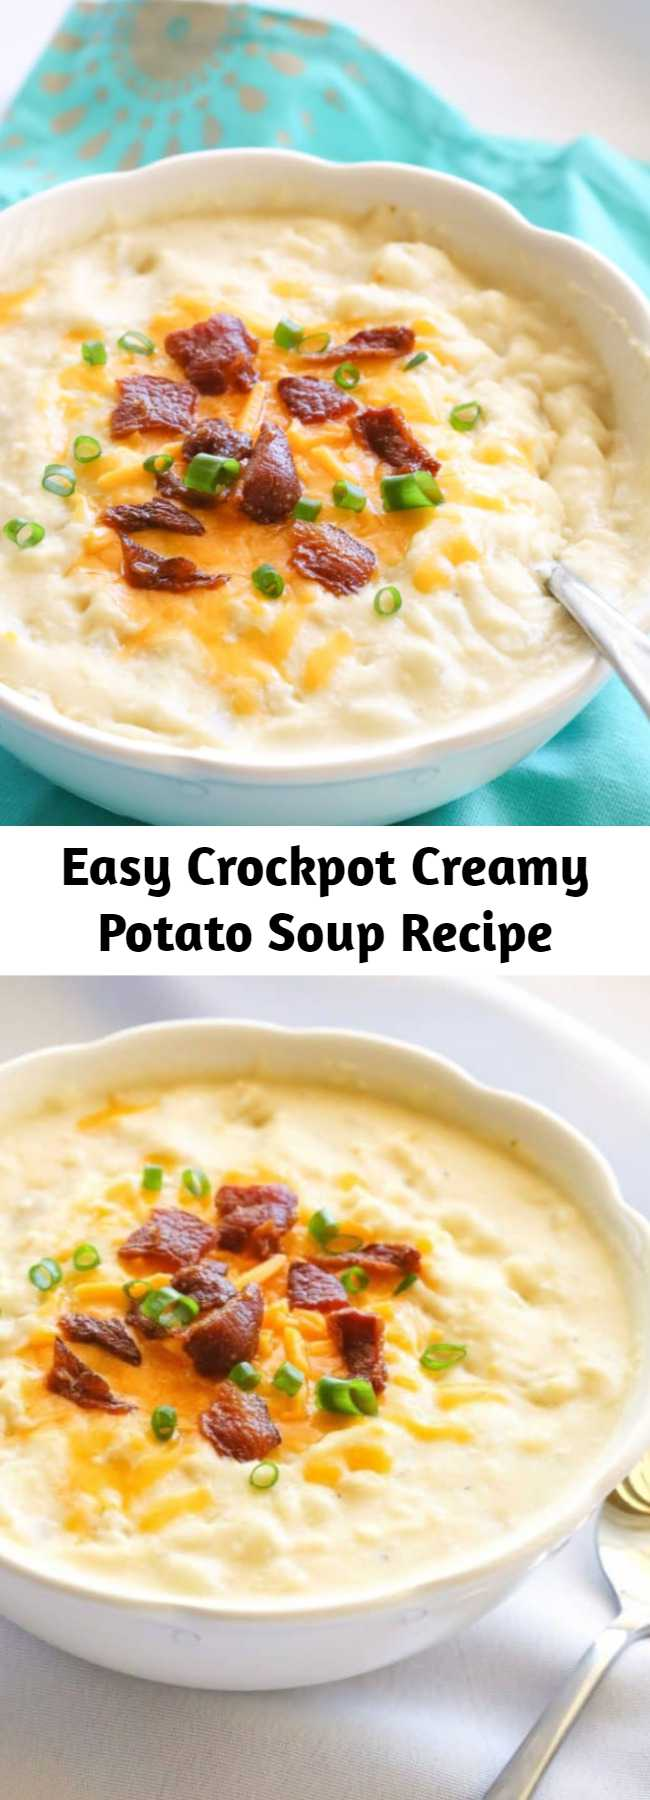 Easy Crockpot Creamy Potato Soup Recipe - This Crockpot Creamy Potato Soup couldn't be any easier. It's cooked all day in the slow cooker and is great for a cold day. Top with bacon, cheese, and green onions for the ultimate potato soup. This soup is versatile – add broccoli or ham to give it a twist. This will become your go-to crockpot potato soup recipe.